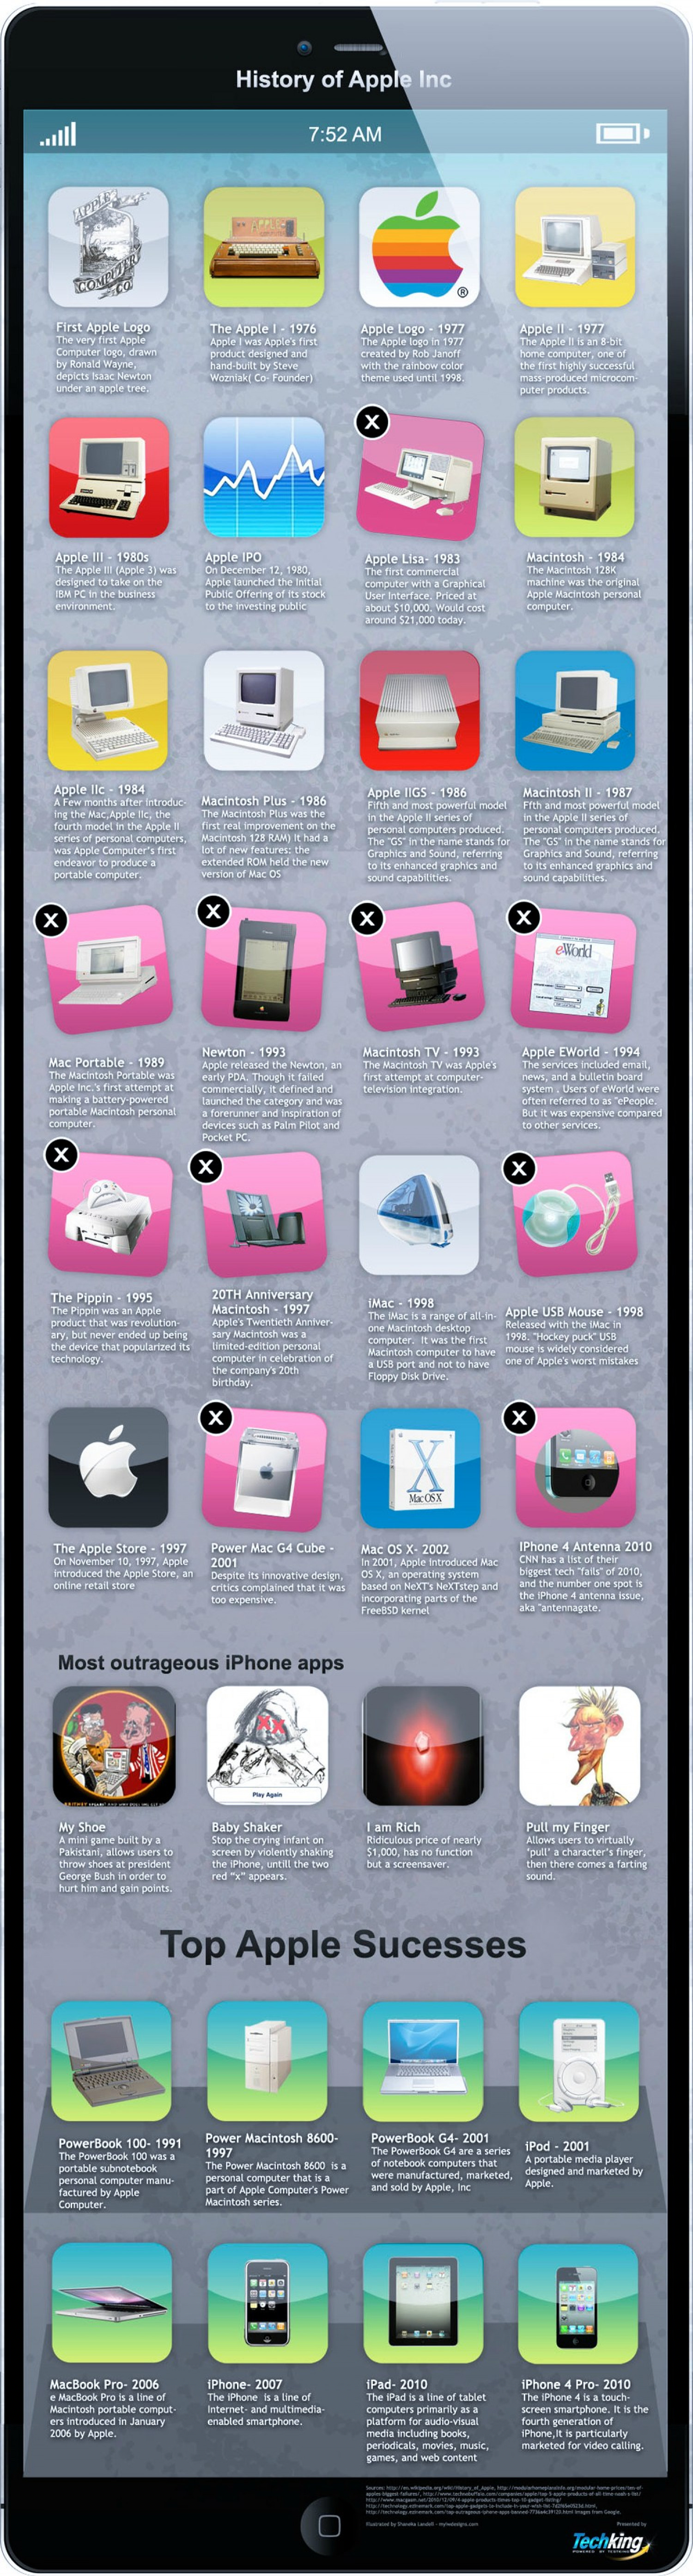 History of Apple, Inc. Infographic